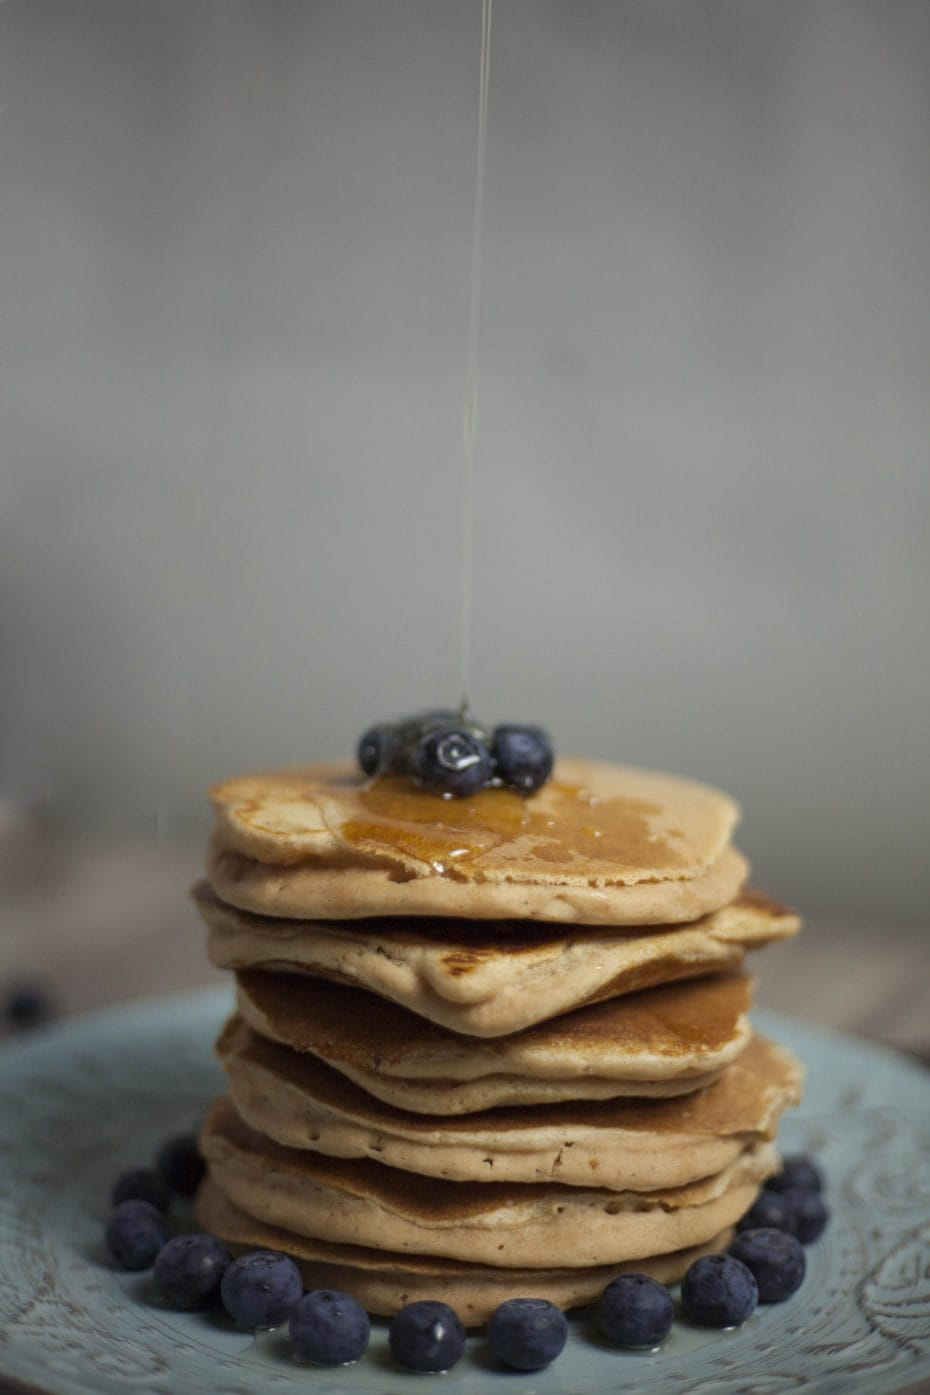 Fluffy Vegan Pancake Lentil Protein - Can you imagine a light, fluffy pancake without eggs or milk that contains extra protein? Yes, with this easy gluten-free, dairy-free & vegan pancake recipe